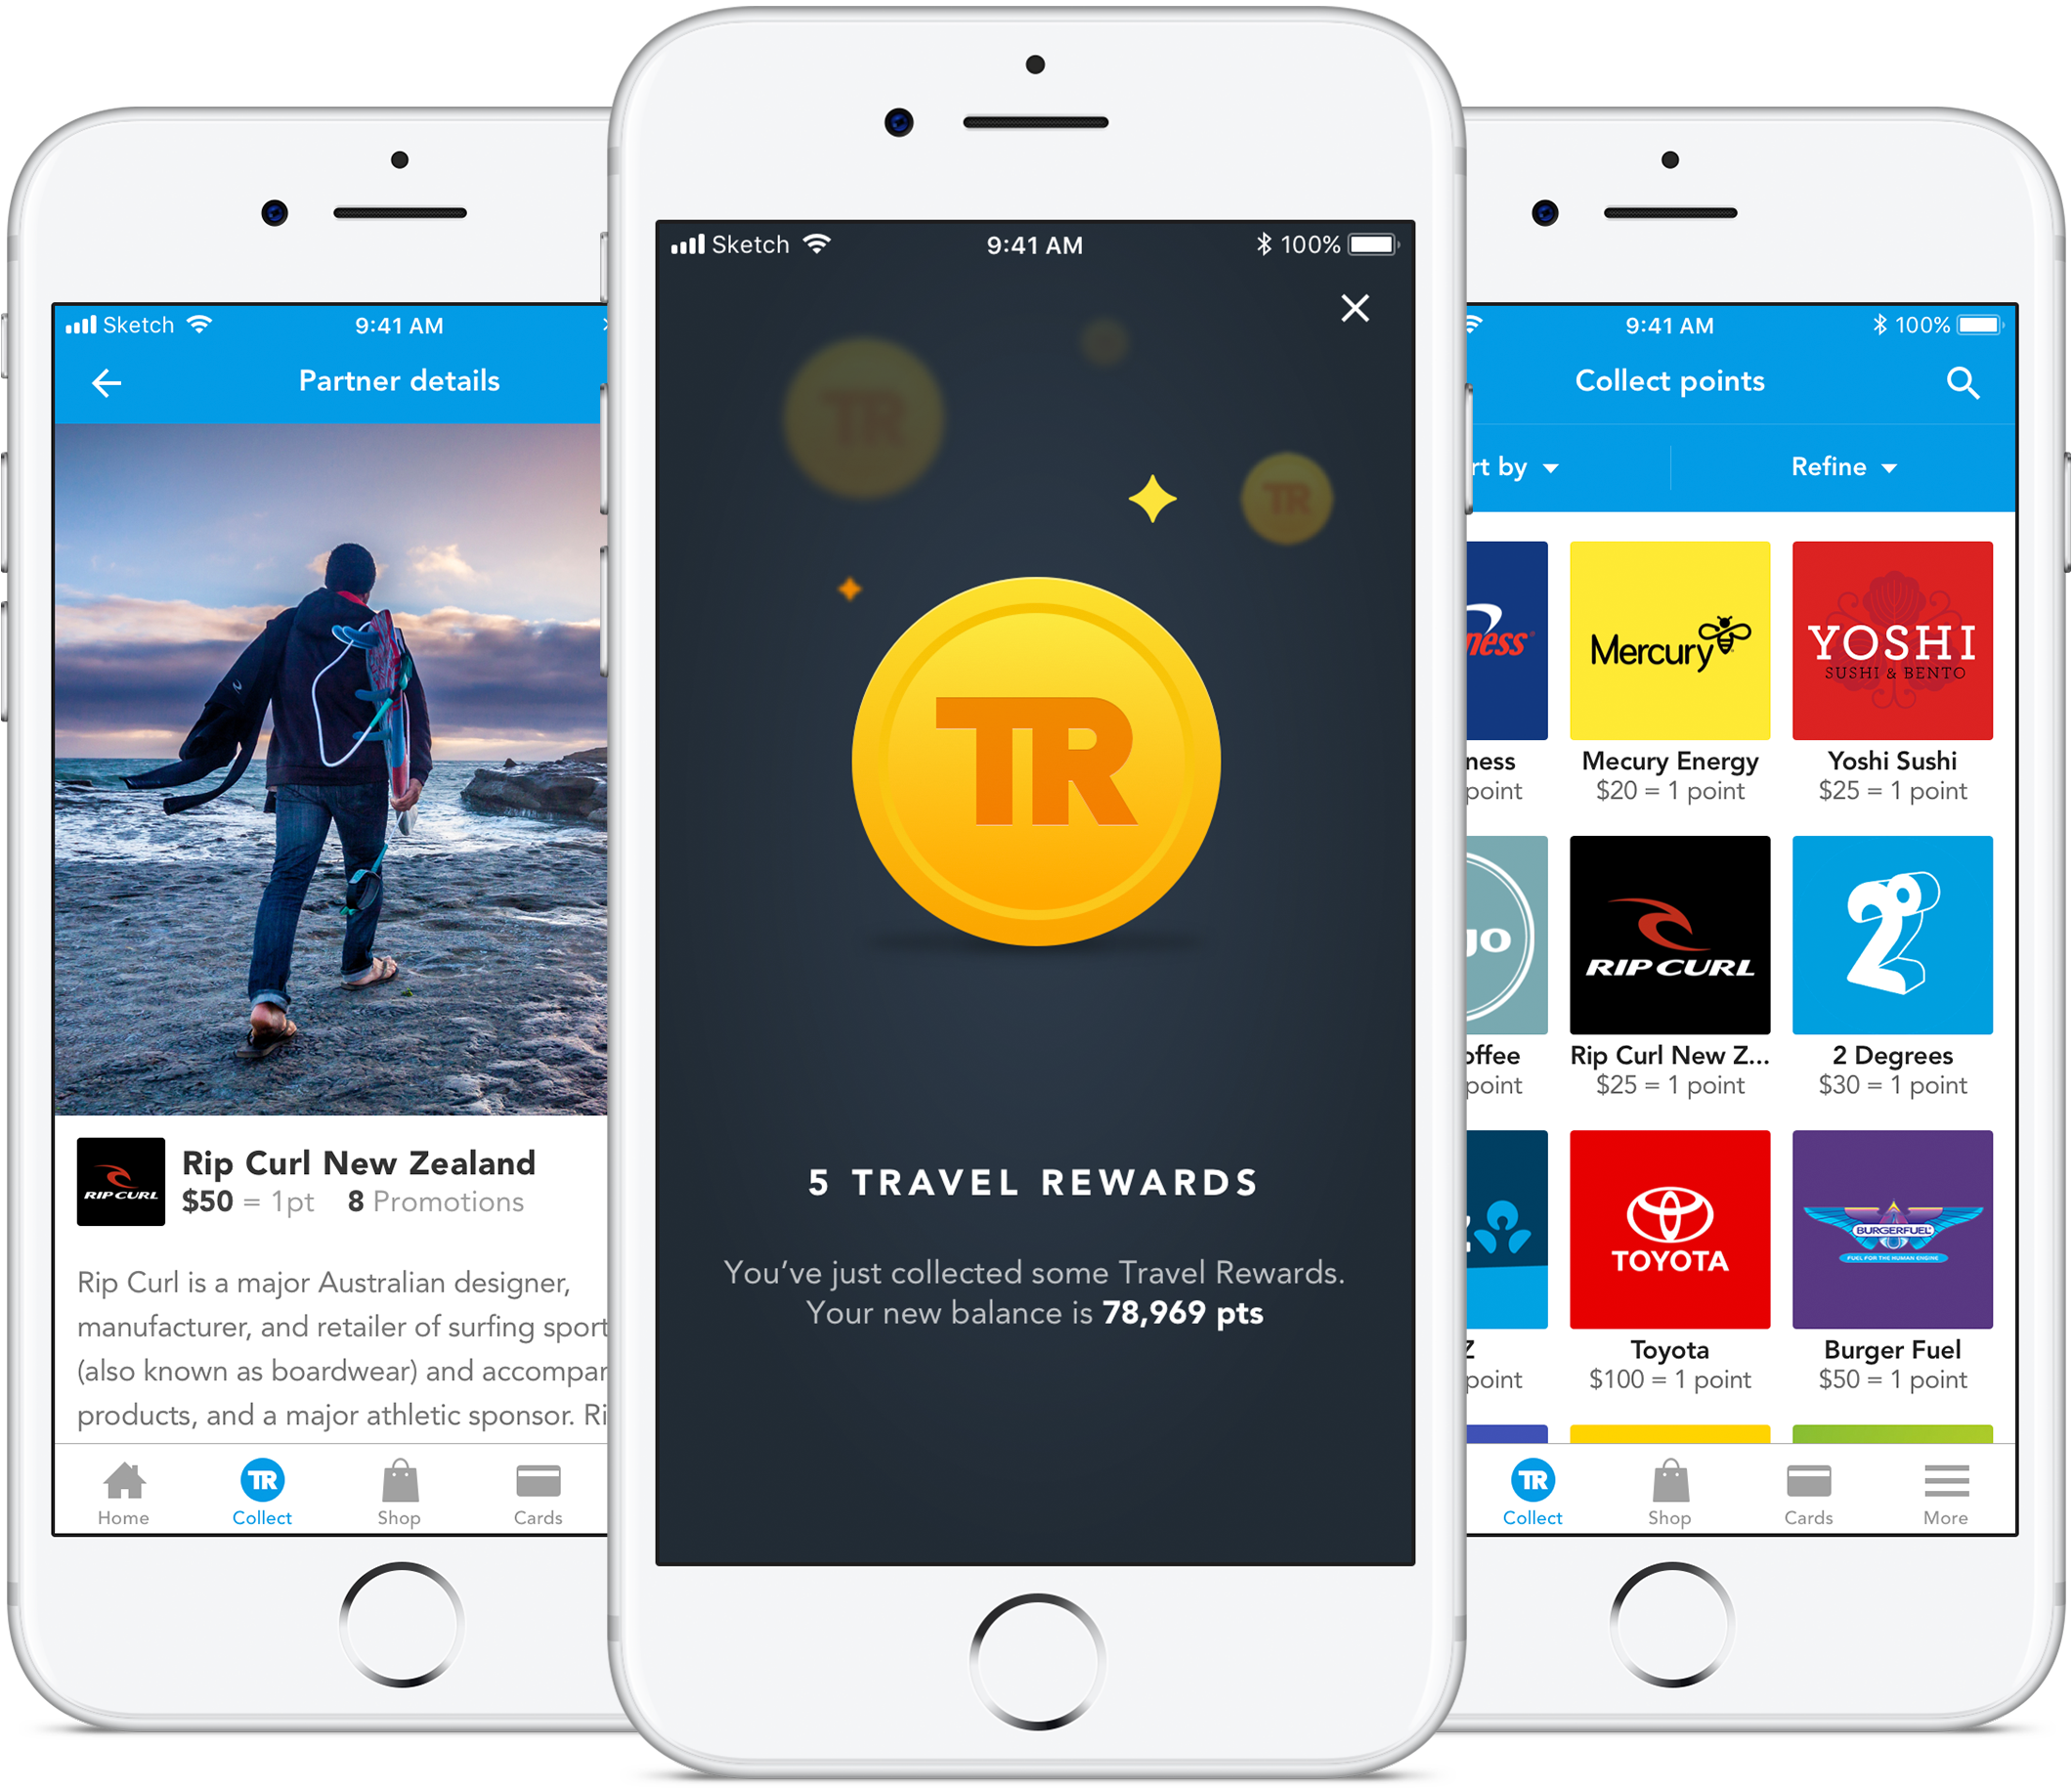 travel-rewards-featured